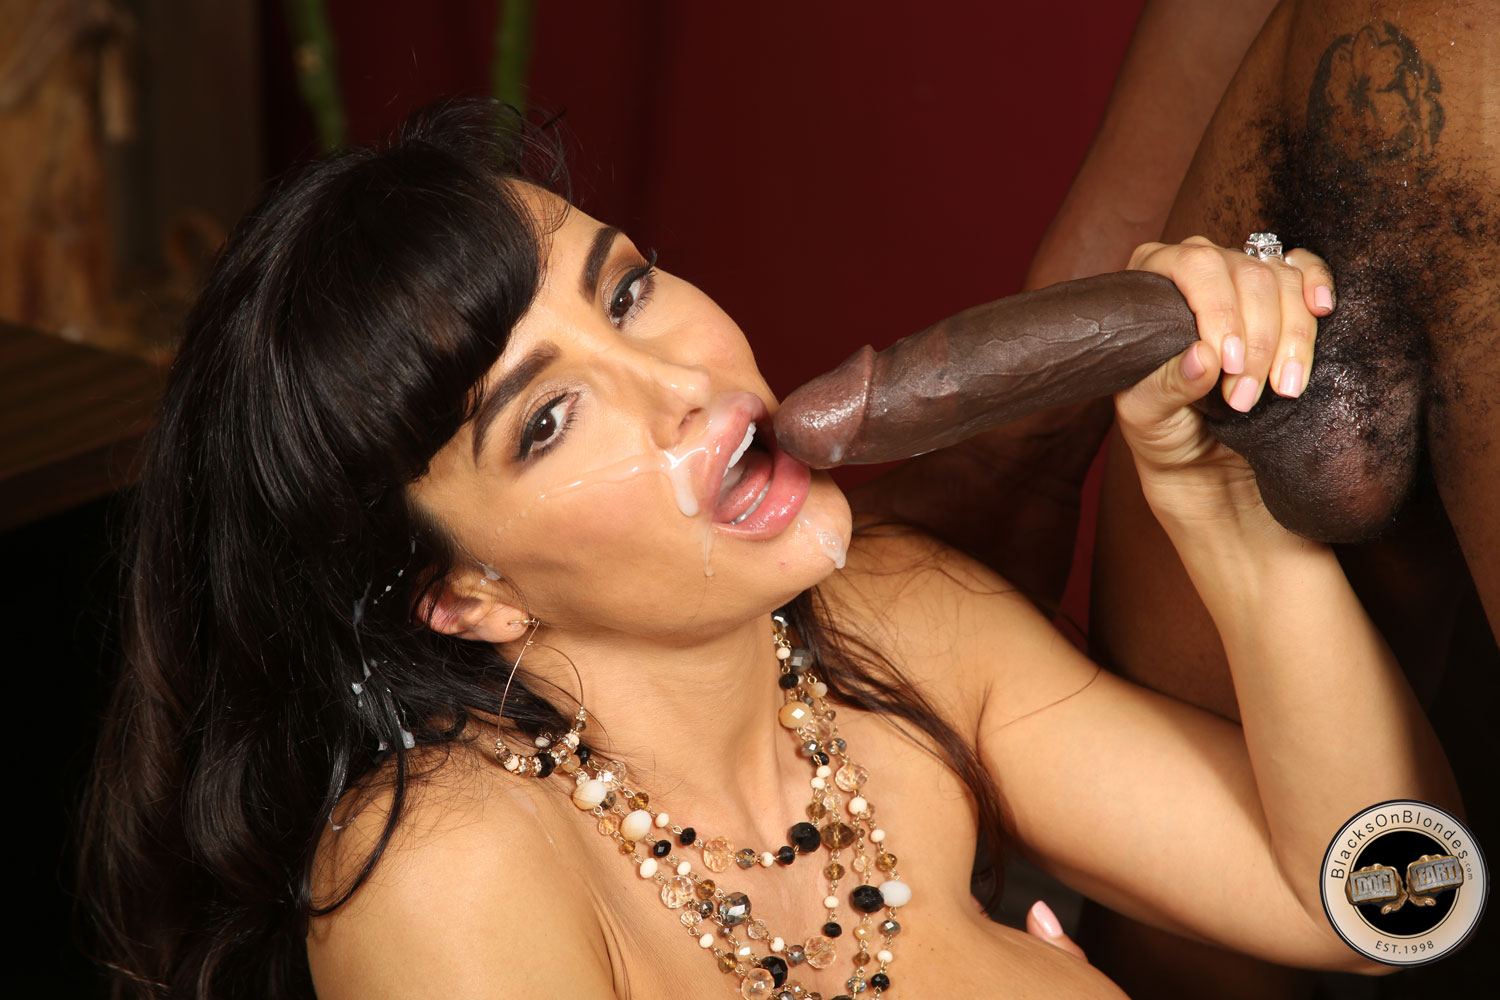 Lisa ann anal thread — 2